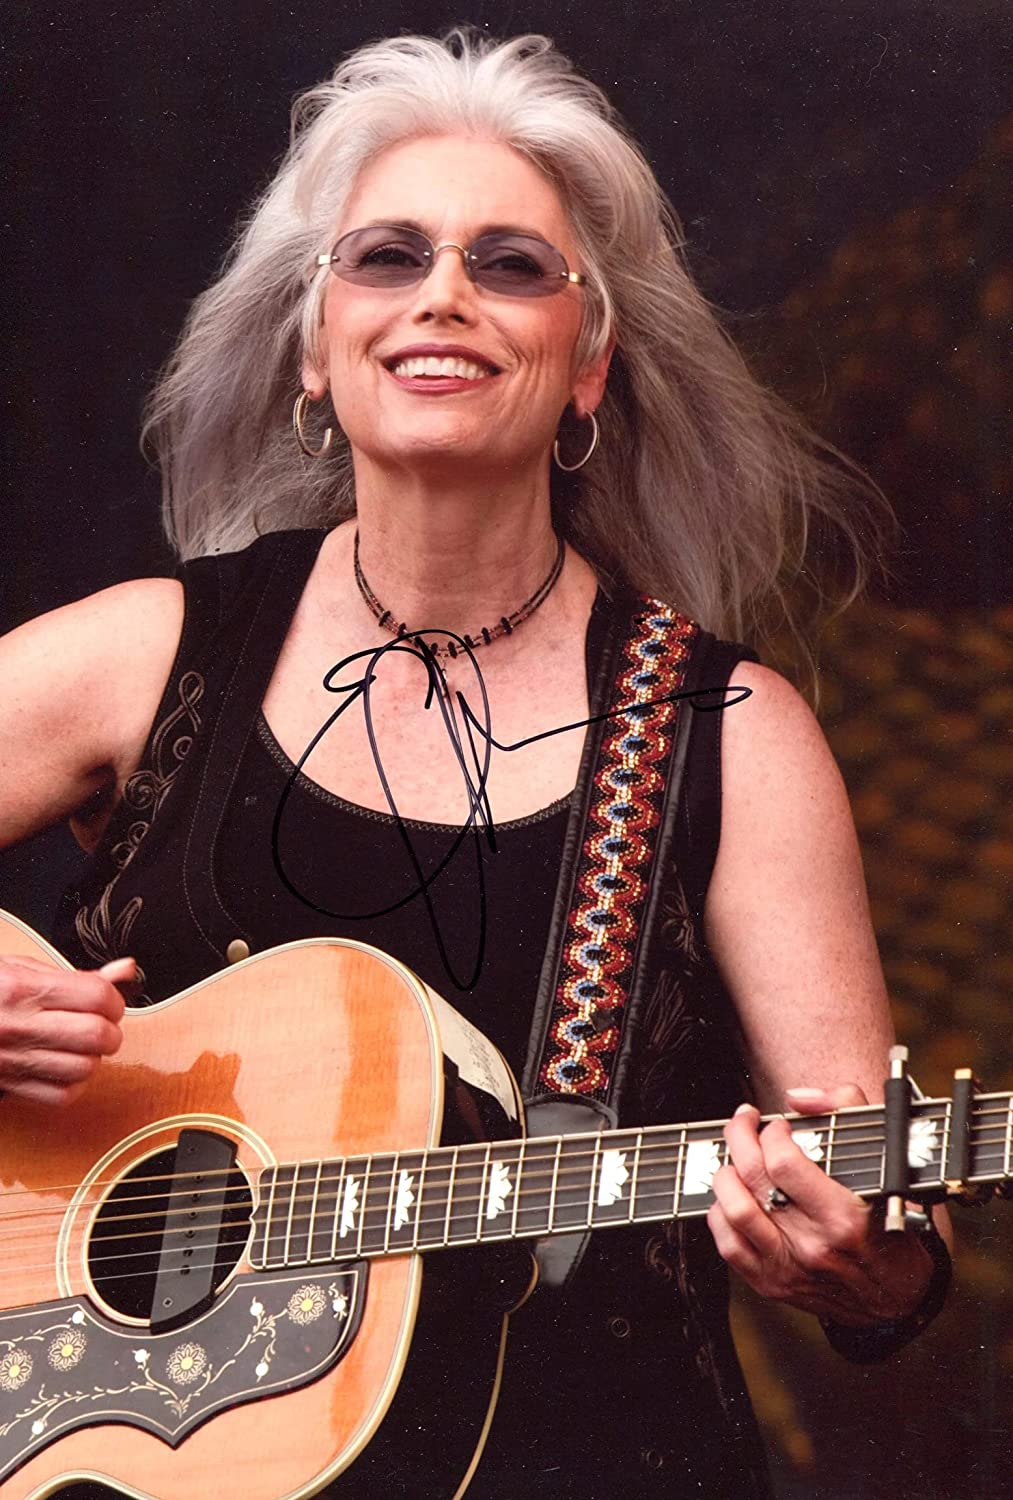 Emmylou Max 63% OFF Harris SINGER - SONGWRITER Surprise price signed autograph In-Person p